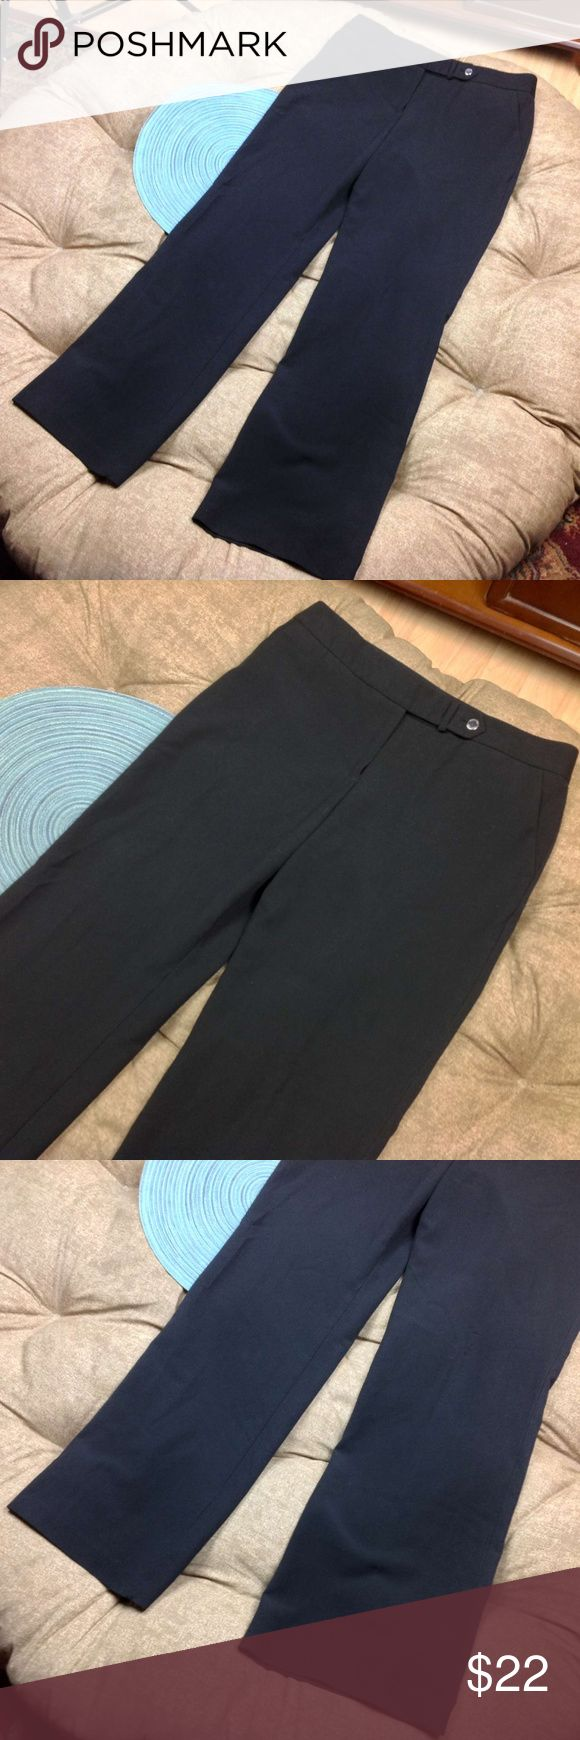 Calvin Klein Dress Pants 8 Womens Black Trouser Great Condition;  Calvin Klein Dress Pants 8 Womens Black Trouser Pockets Stretch; 73/23/4 Polyester/Rayon/Spandex; 16.5 across waist; 31 inch inseam; 9.5 inch rise Calvin Klein Pants Trousers